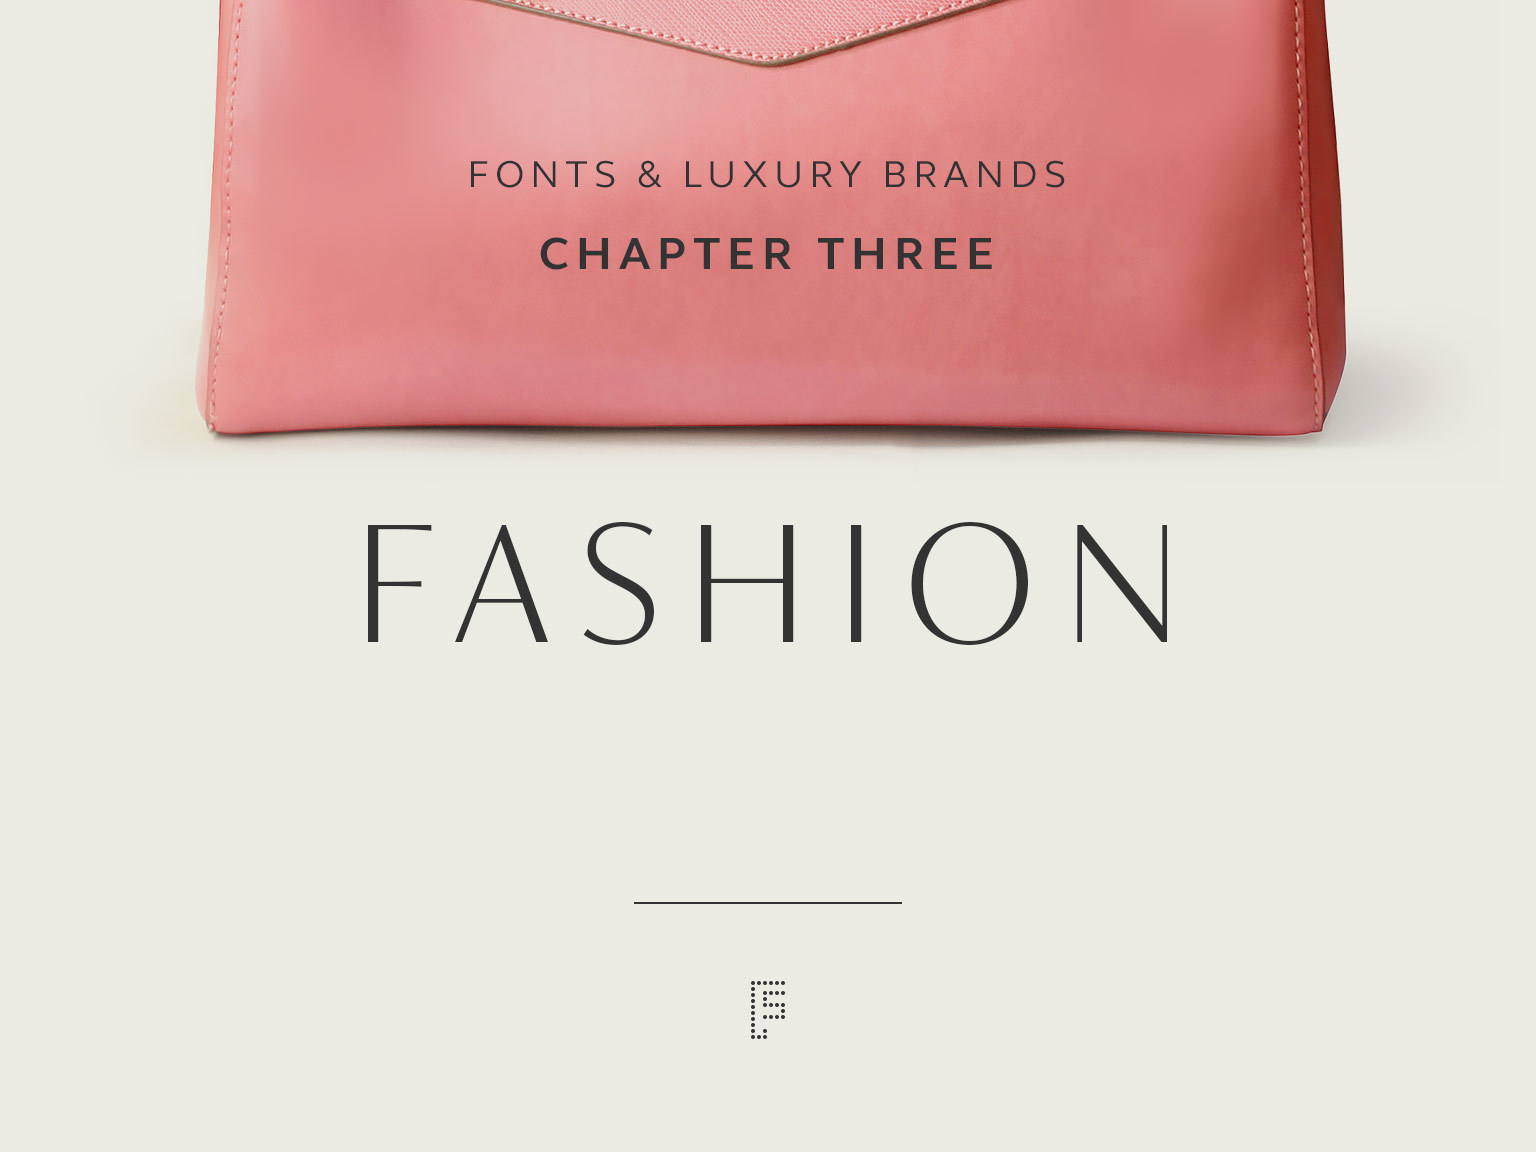 Fonts and luxury brands: Chapter three fashion | Fontsmith Blog